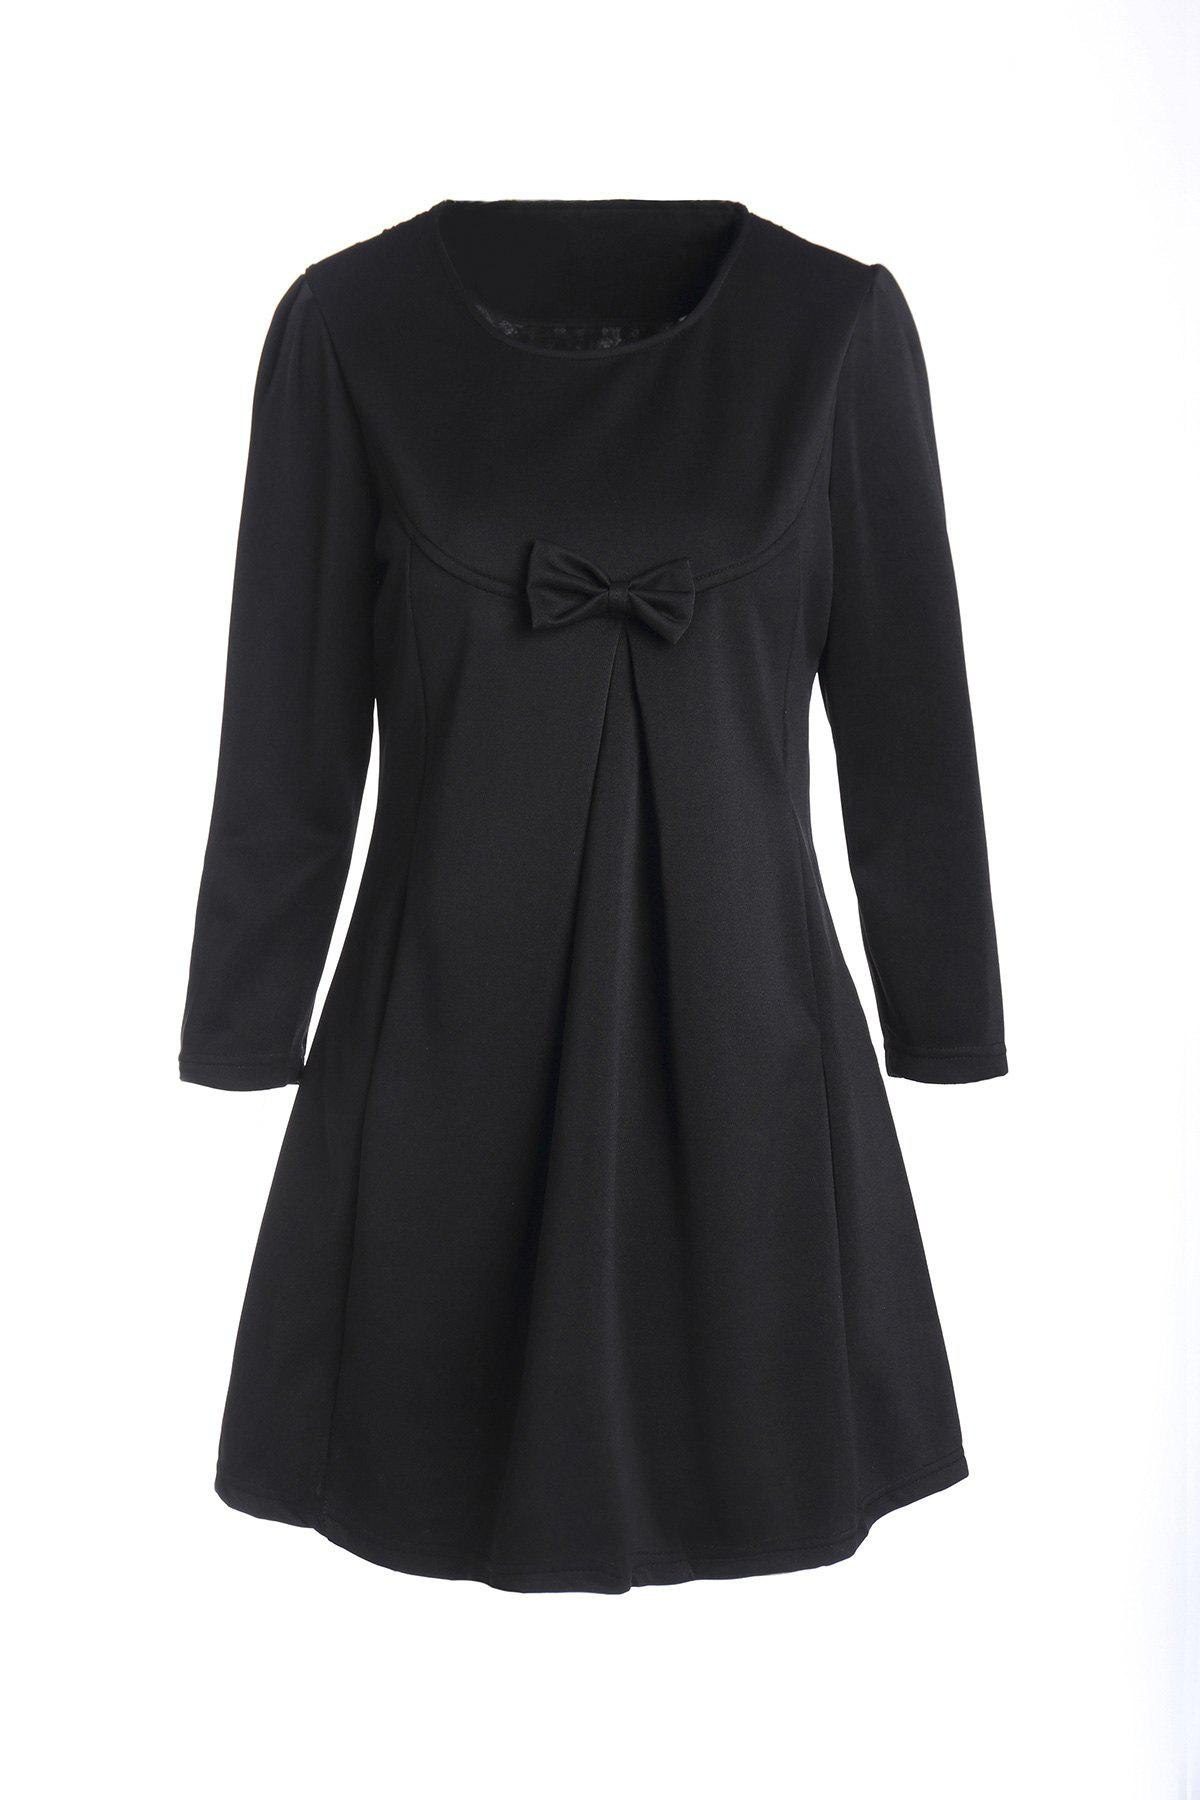 Chic Bowknot Design Solid Color Round Neck 3/4 Sleeve Women's Dress